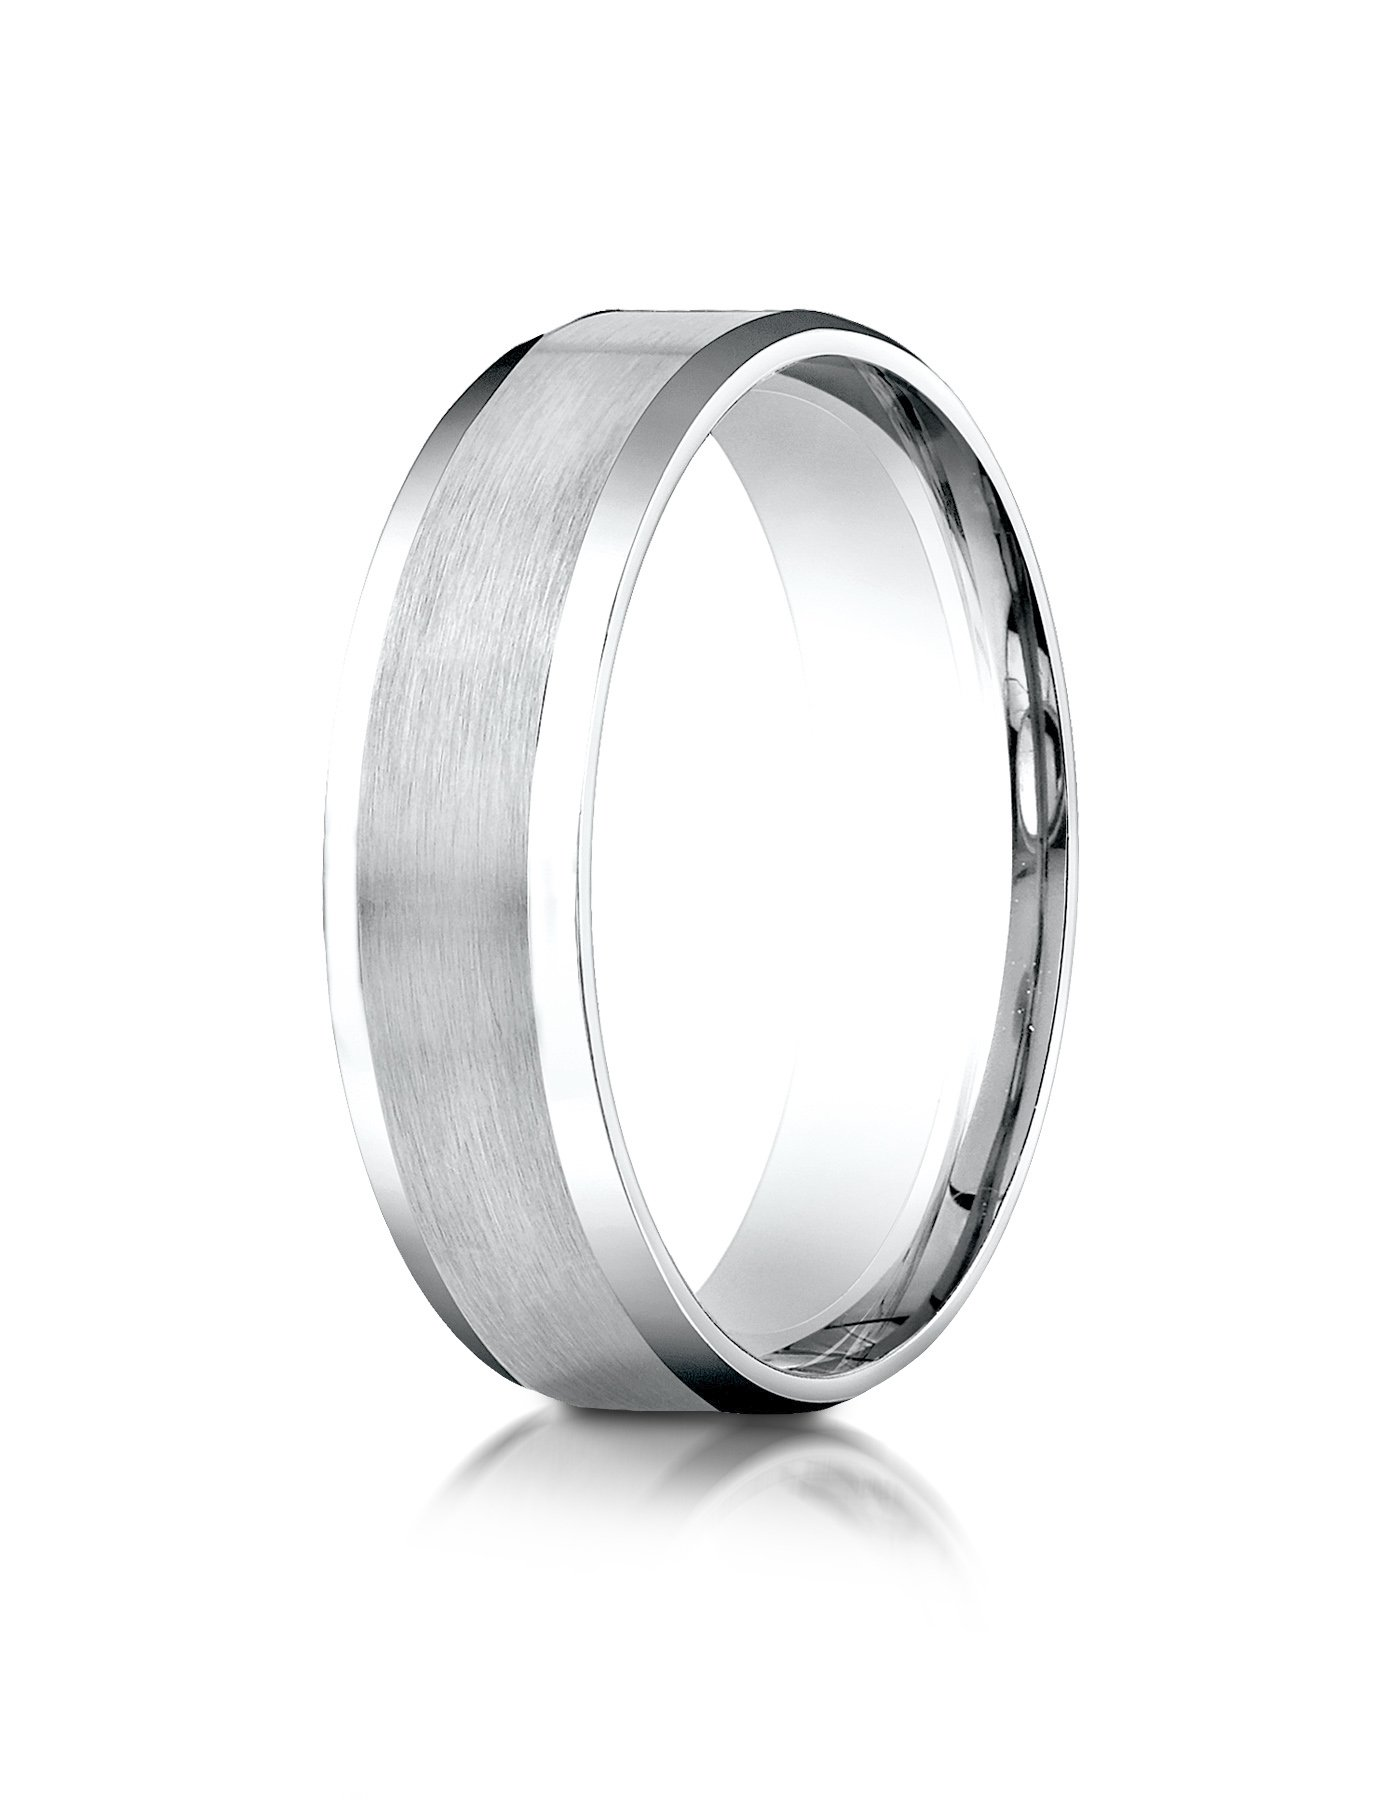 Platinum 6mm Comfort-Fit Satin-Finished with High Polished Beveled Edge Carved Design Wedding Band Ring for Men & Women Size 4 to 15